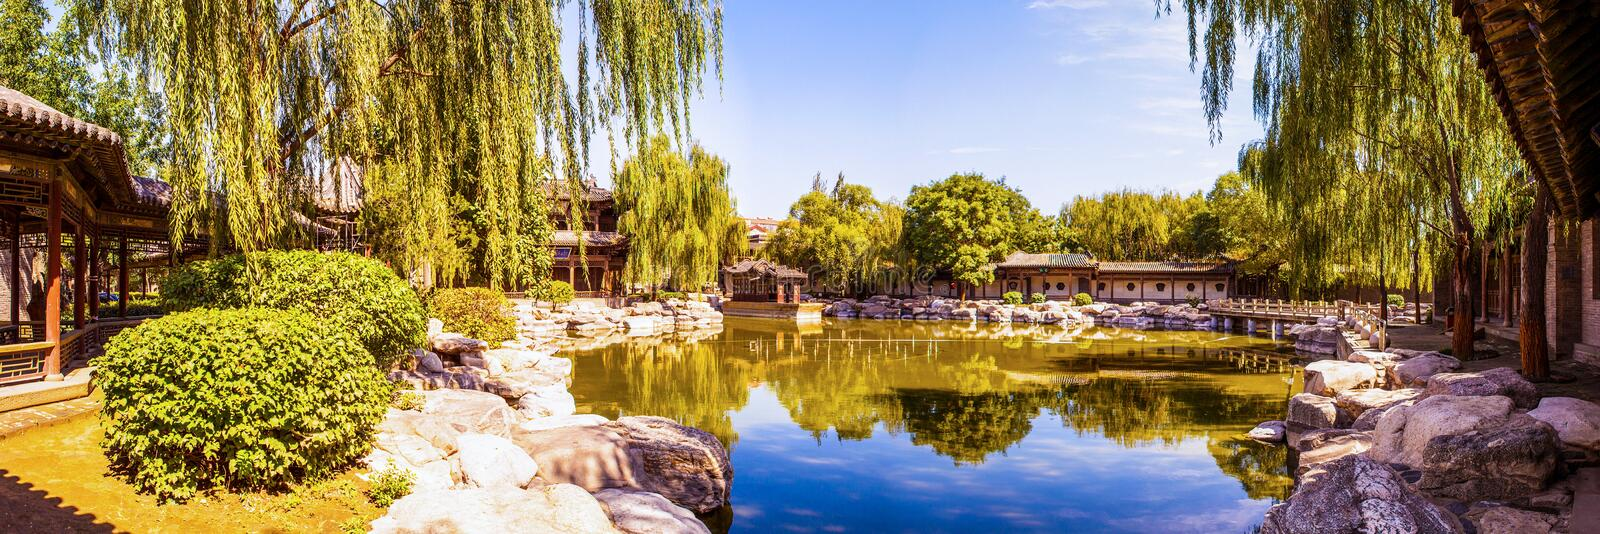 Chinese classical garden building-Chinese classical garden-West Park scene royalty free stock photo